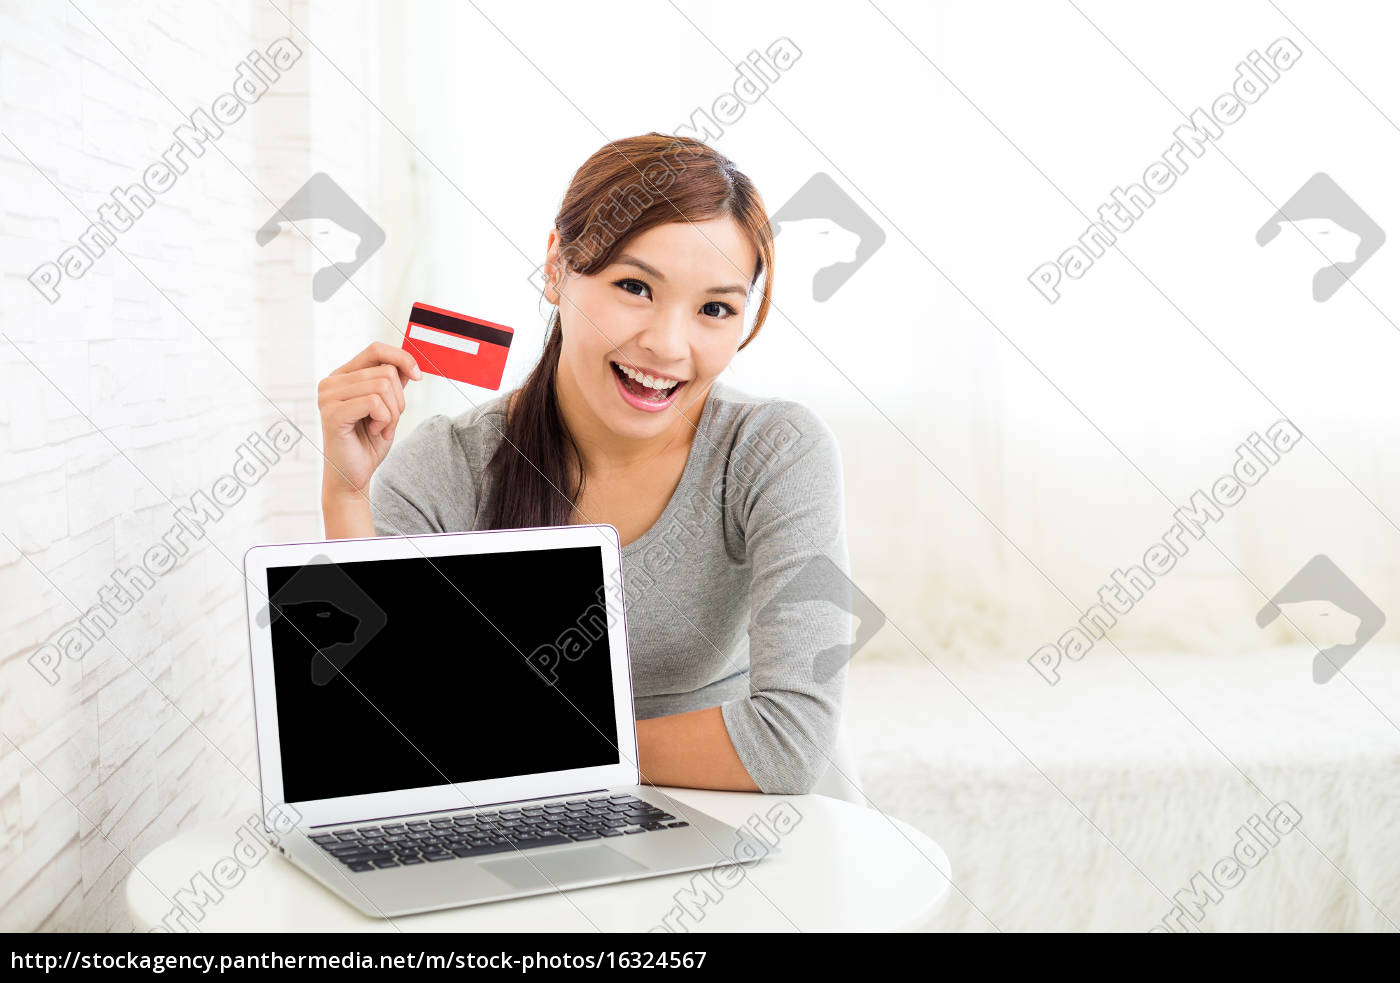 woman, holding, credit, card, for, online - 16324567